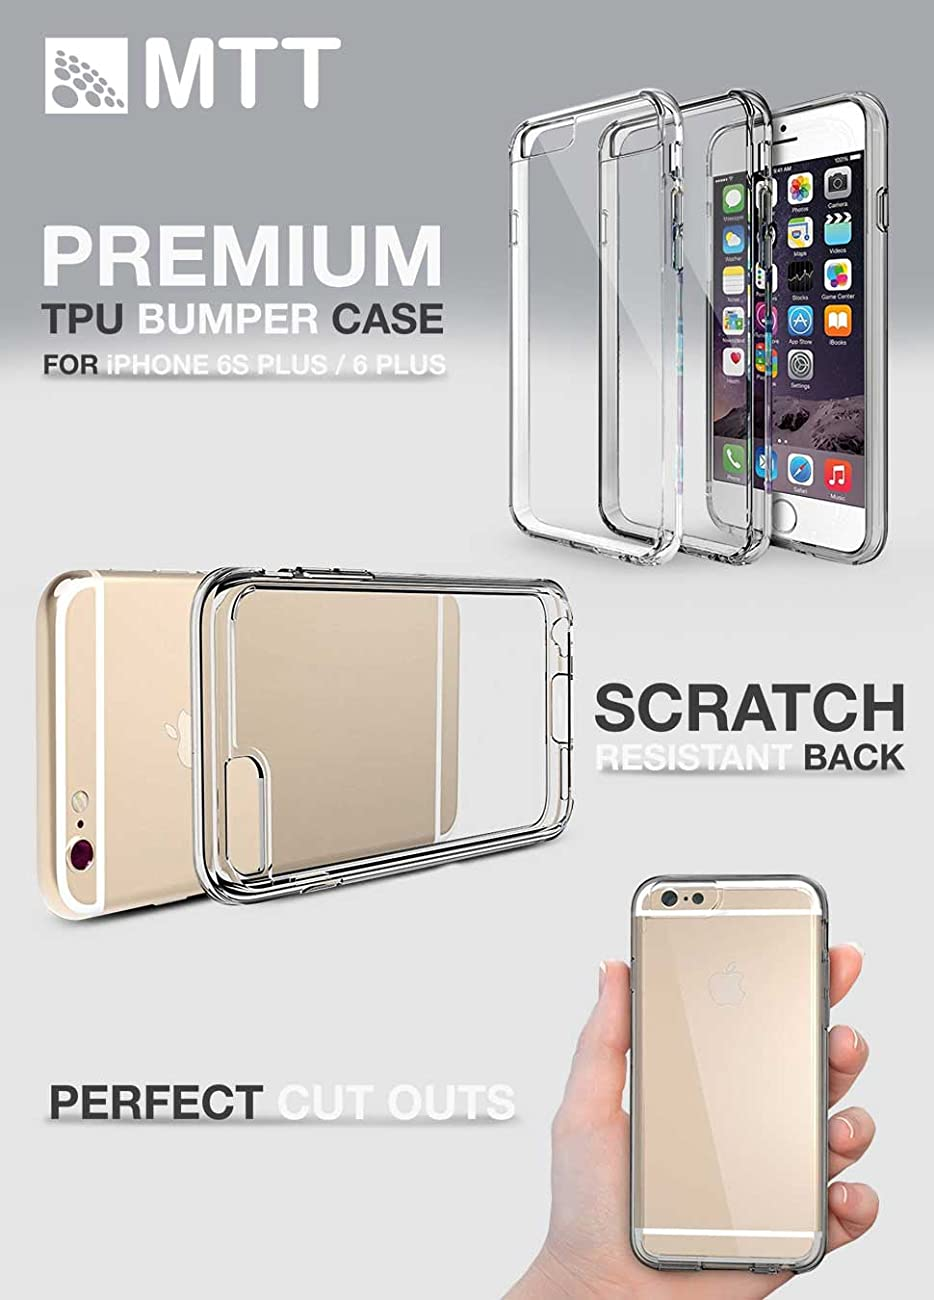 Mtt Shock Proof Bumper Transparent Case For Iphone 6s Clear Back Reveal Your Plus 6 With Ultra Body Which Reveals And Enhances The Original Color Design Of